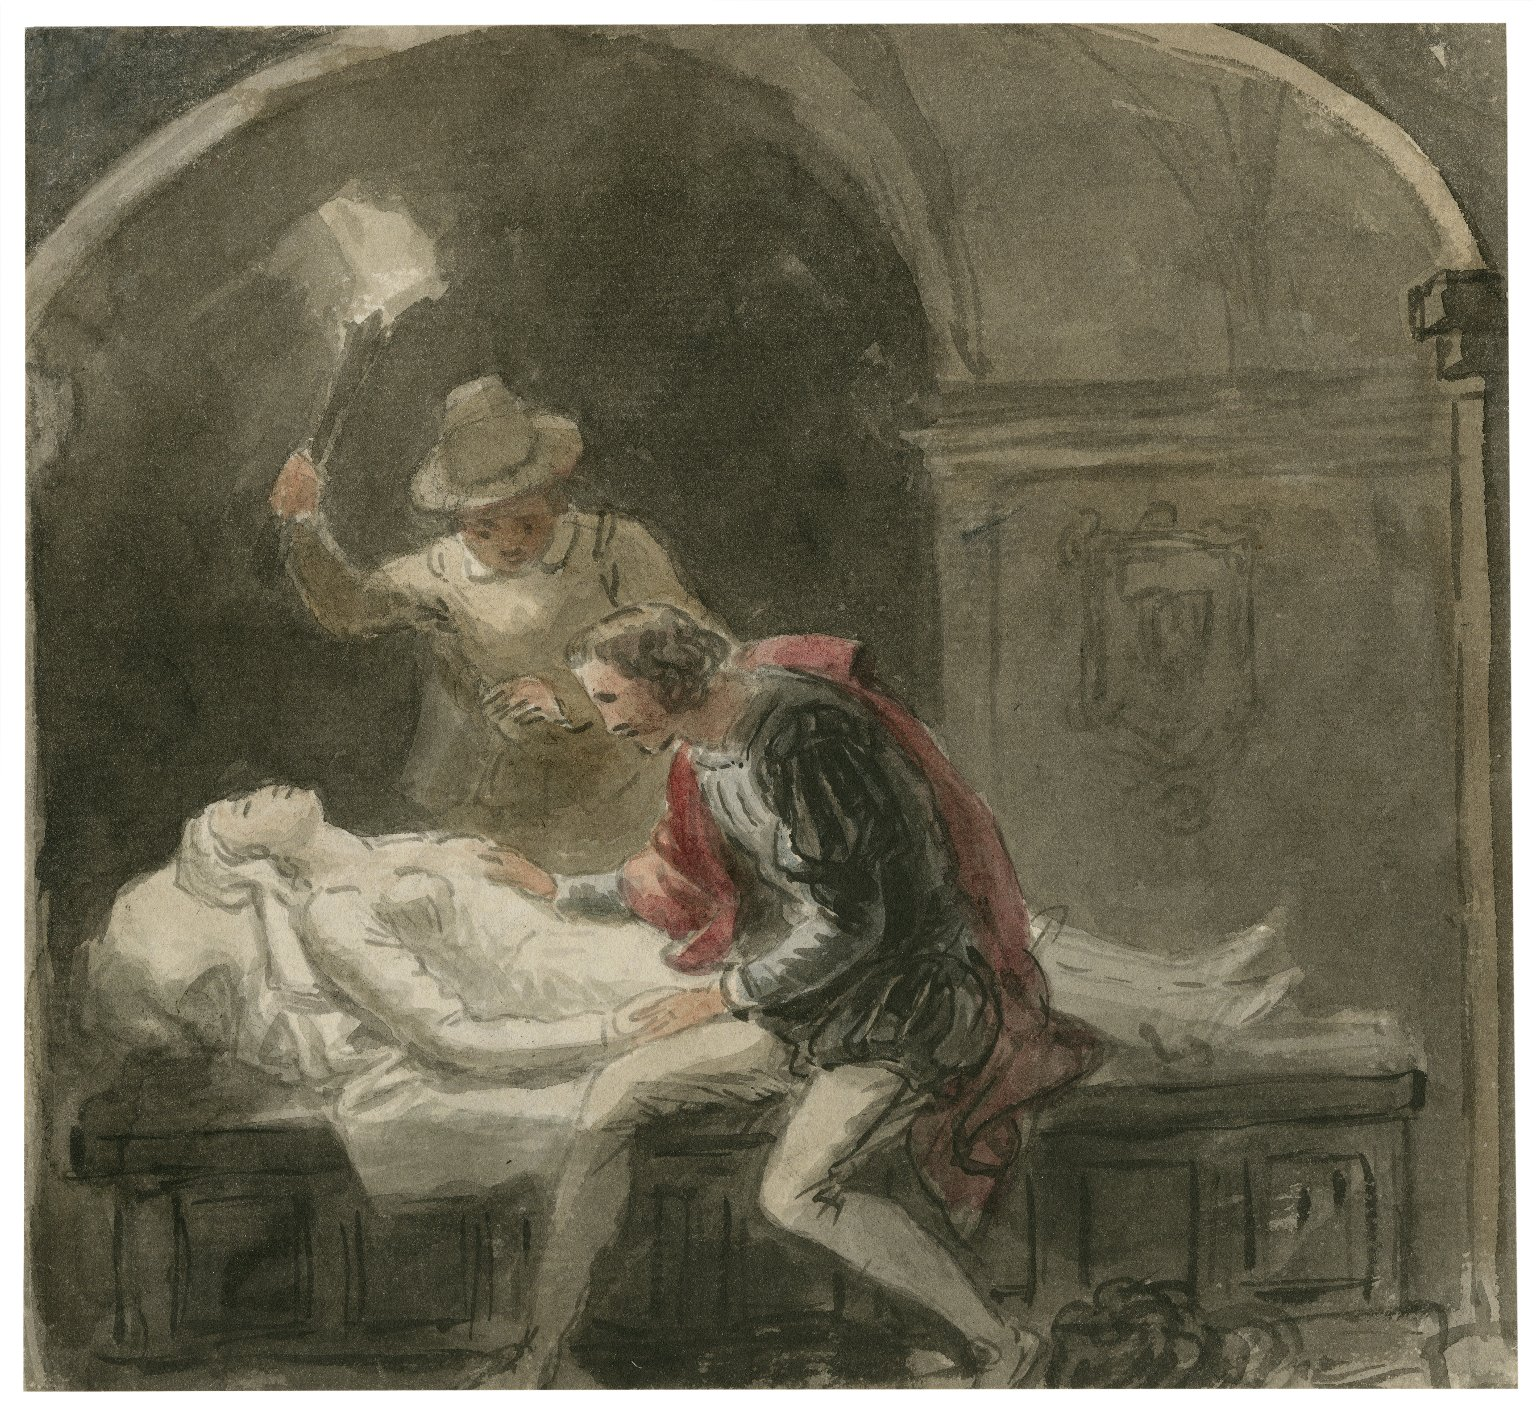 [Scenes from Romeo and Juliet] [graphic] / [John Wright].